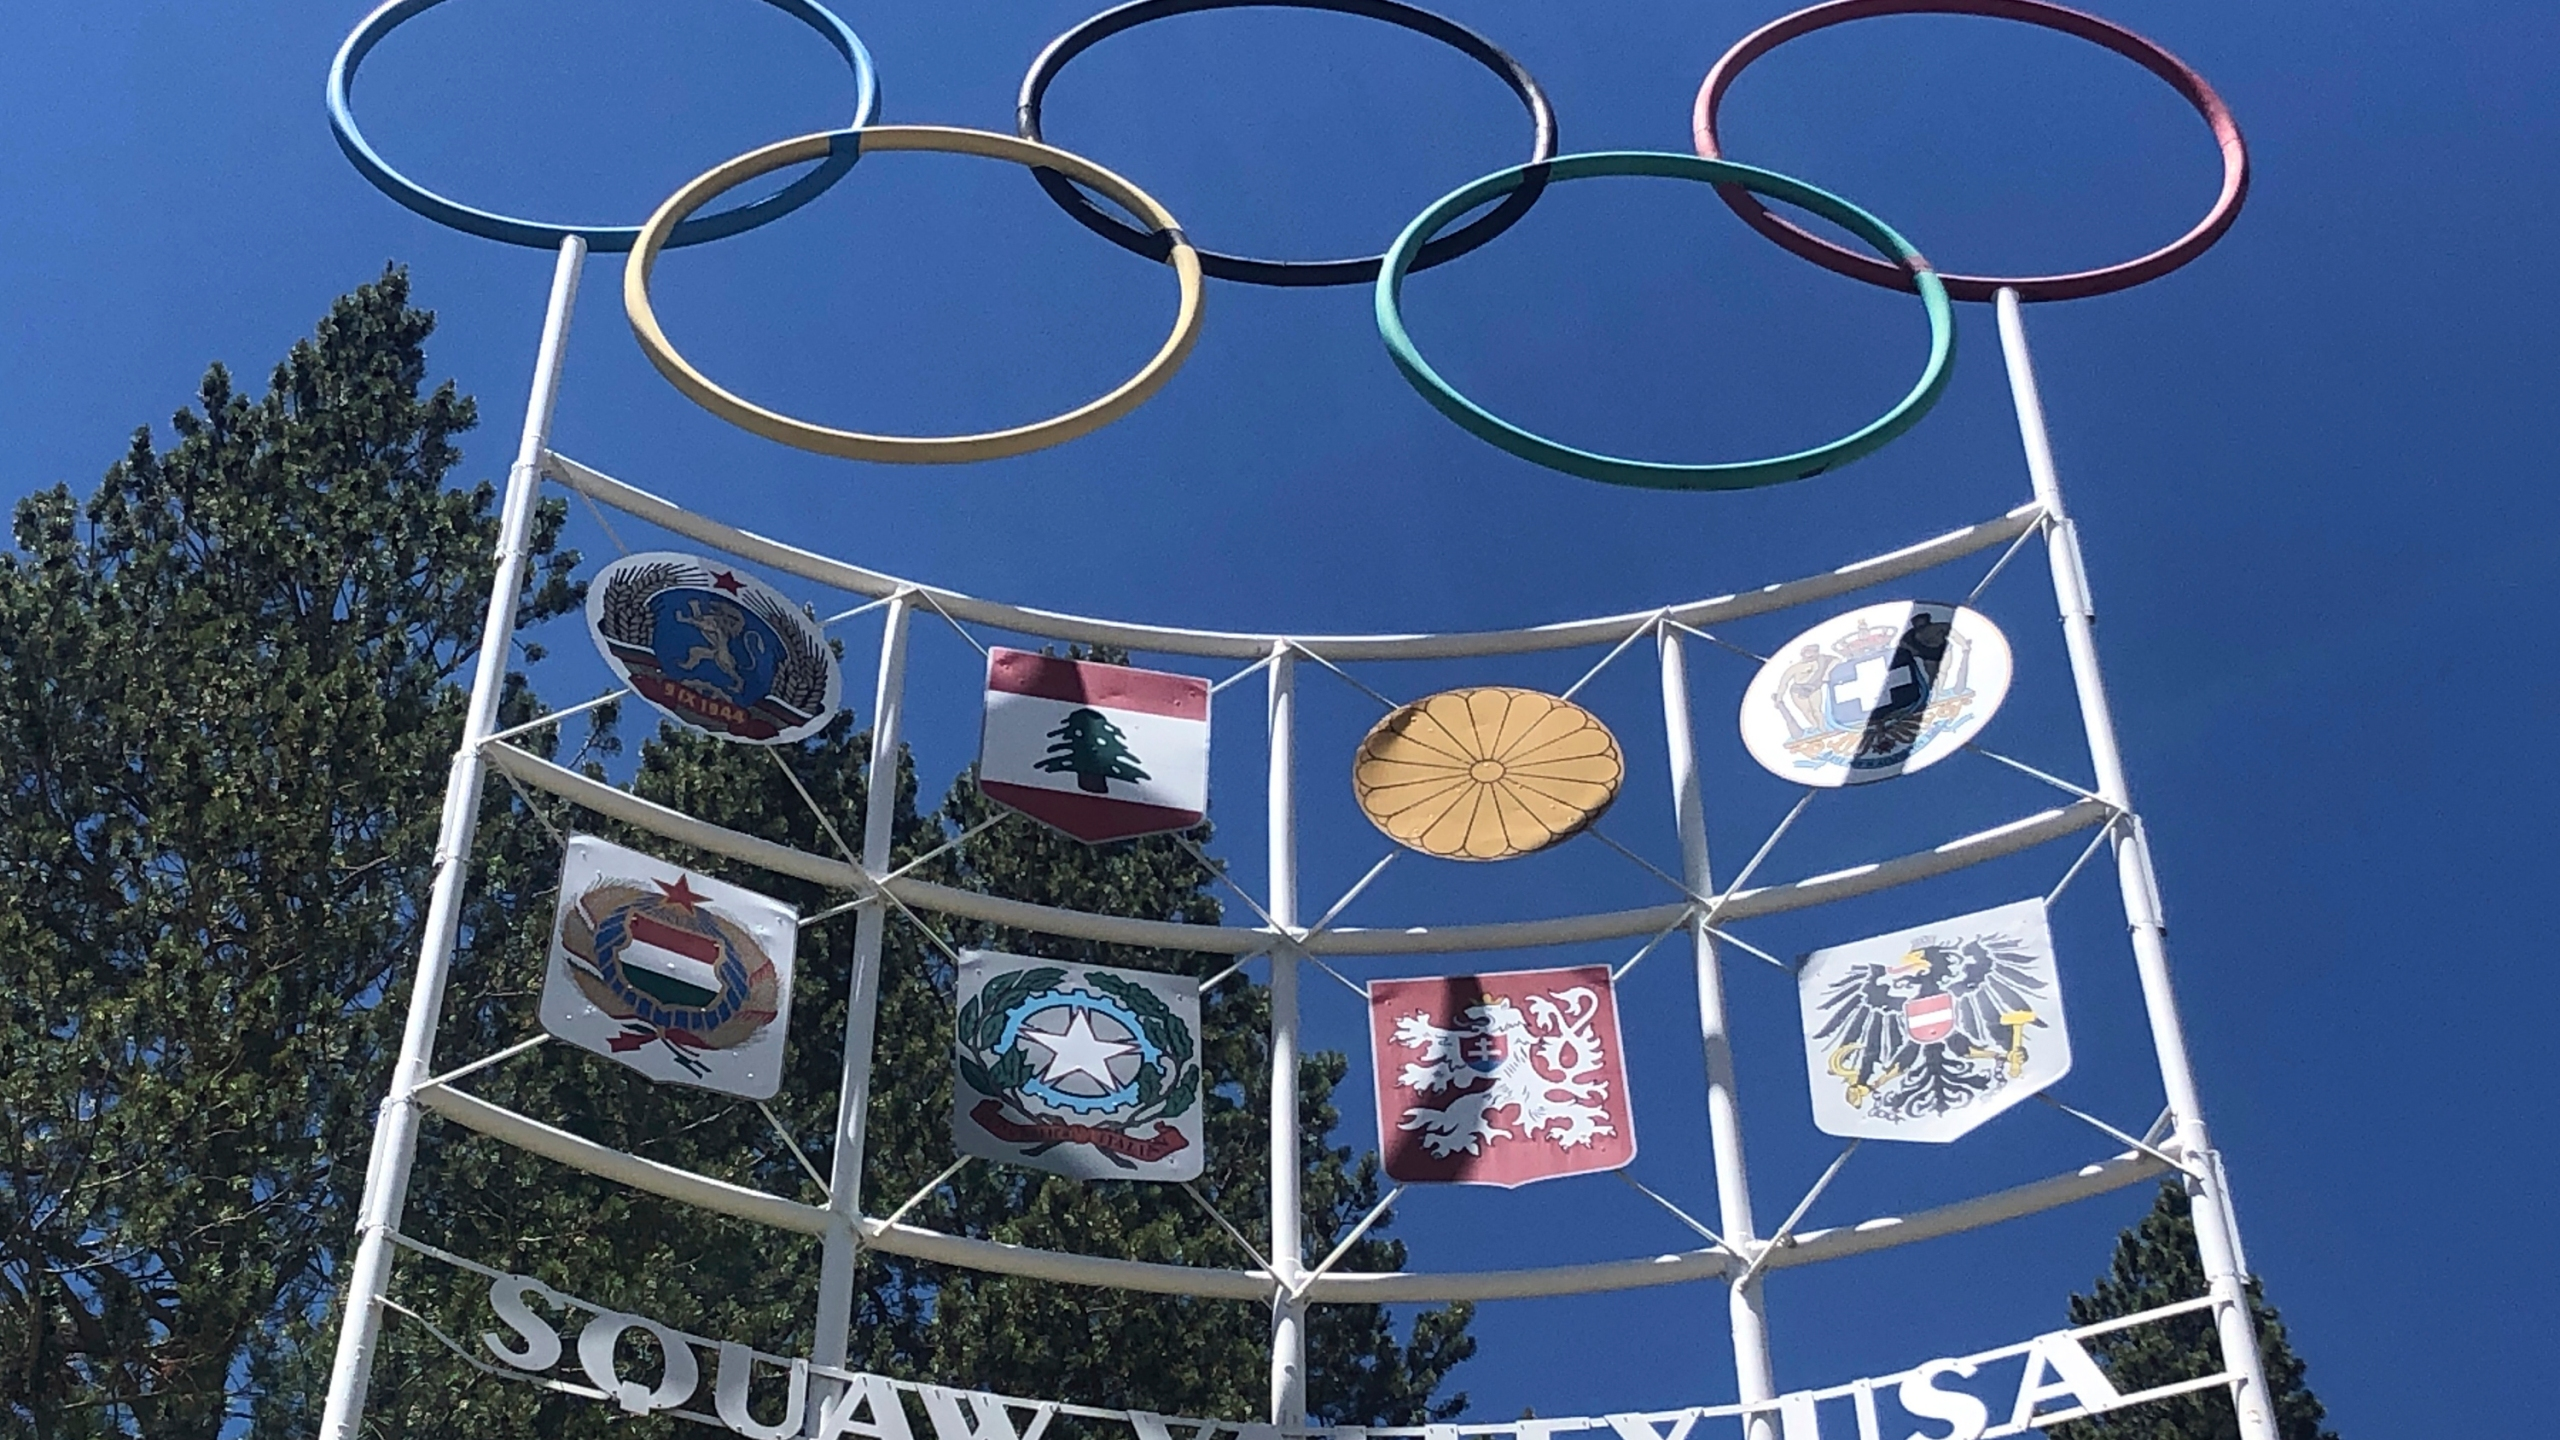 The Olympic rings stand atop a sign at the entrance to the Squaw Valley Ski Resort in Olympic Valley on July 8, 2020. (AP Photo/Haven Daley)